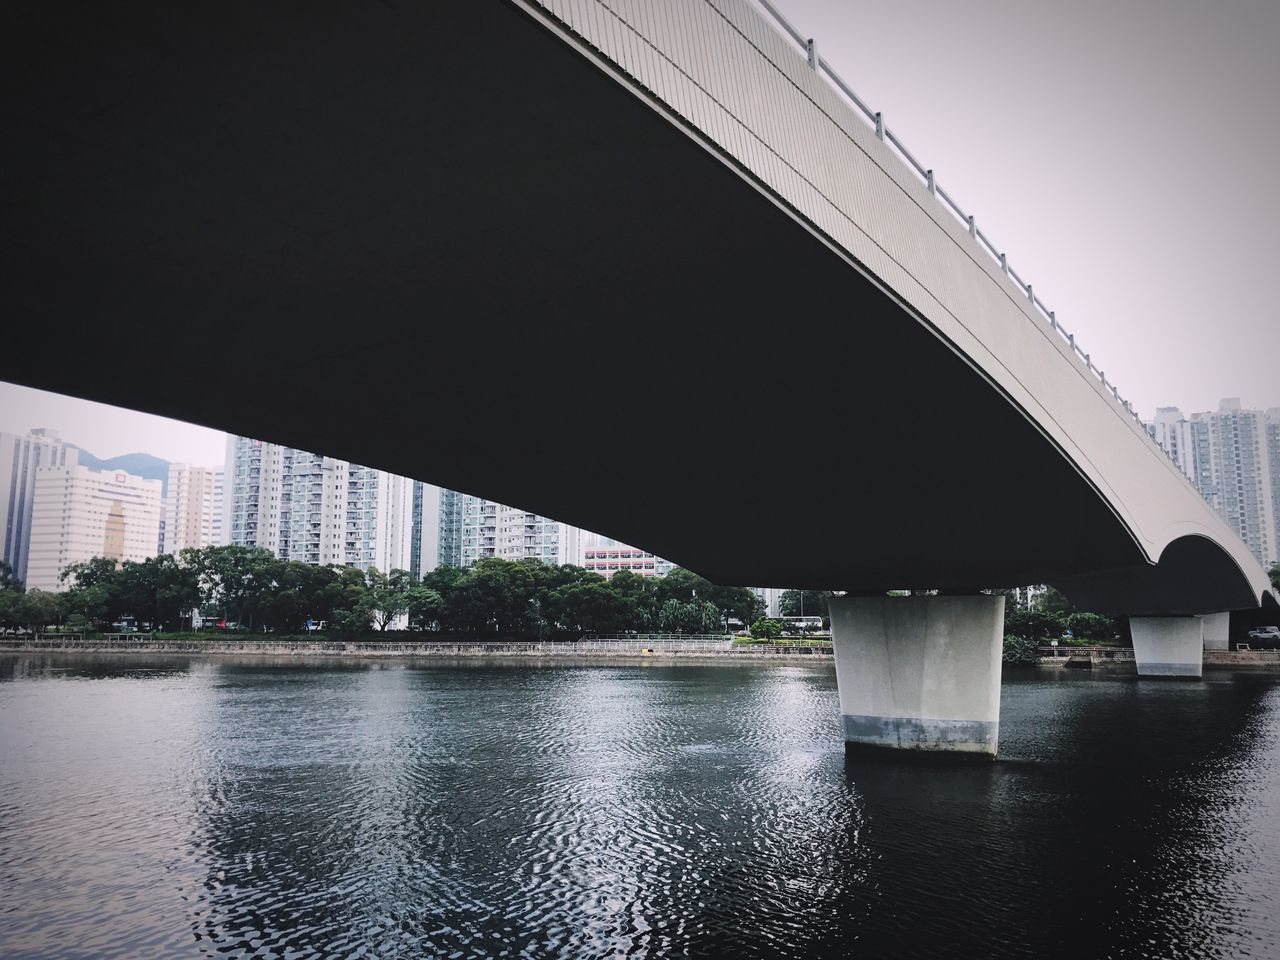 Architecture Built Structure Building Exterior Connection Bridge - Man Made Structure City Water Clear Sky River Engineering Waterfront Day Outdoors Modern No People Tree Sky Hong Kong Shatin Riverside Sunny Autumn